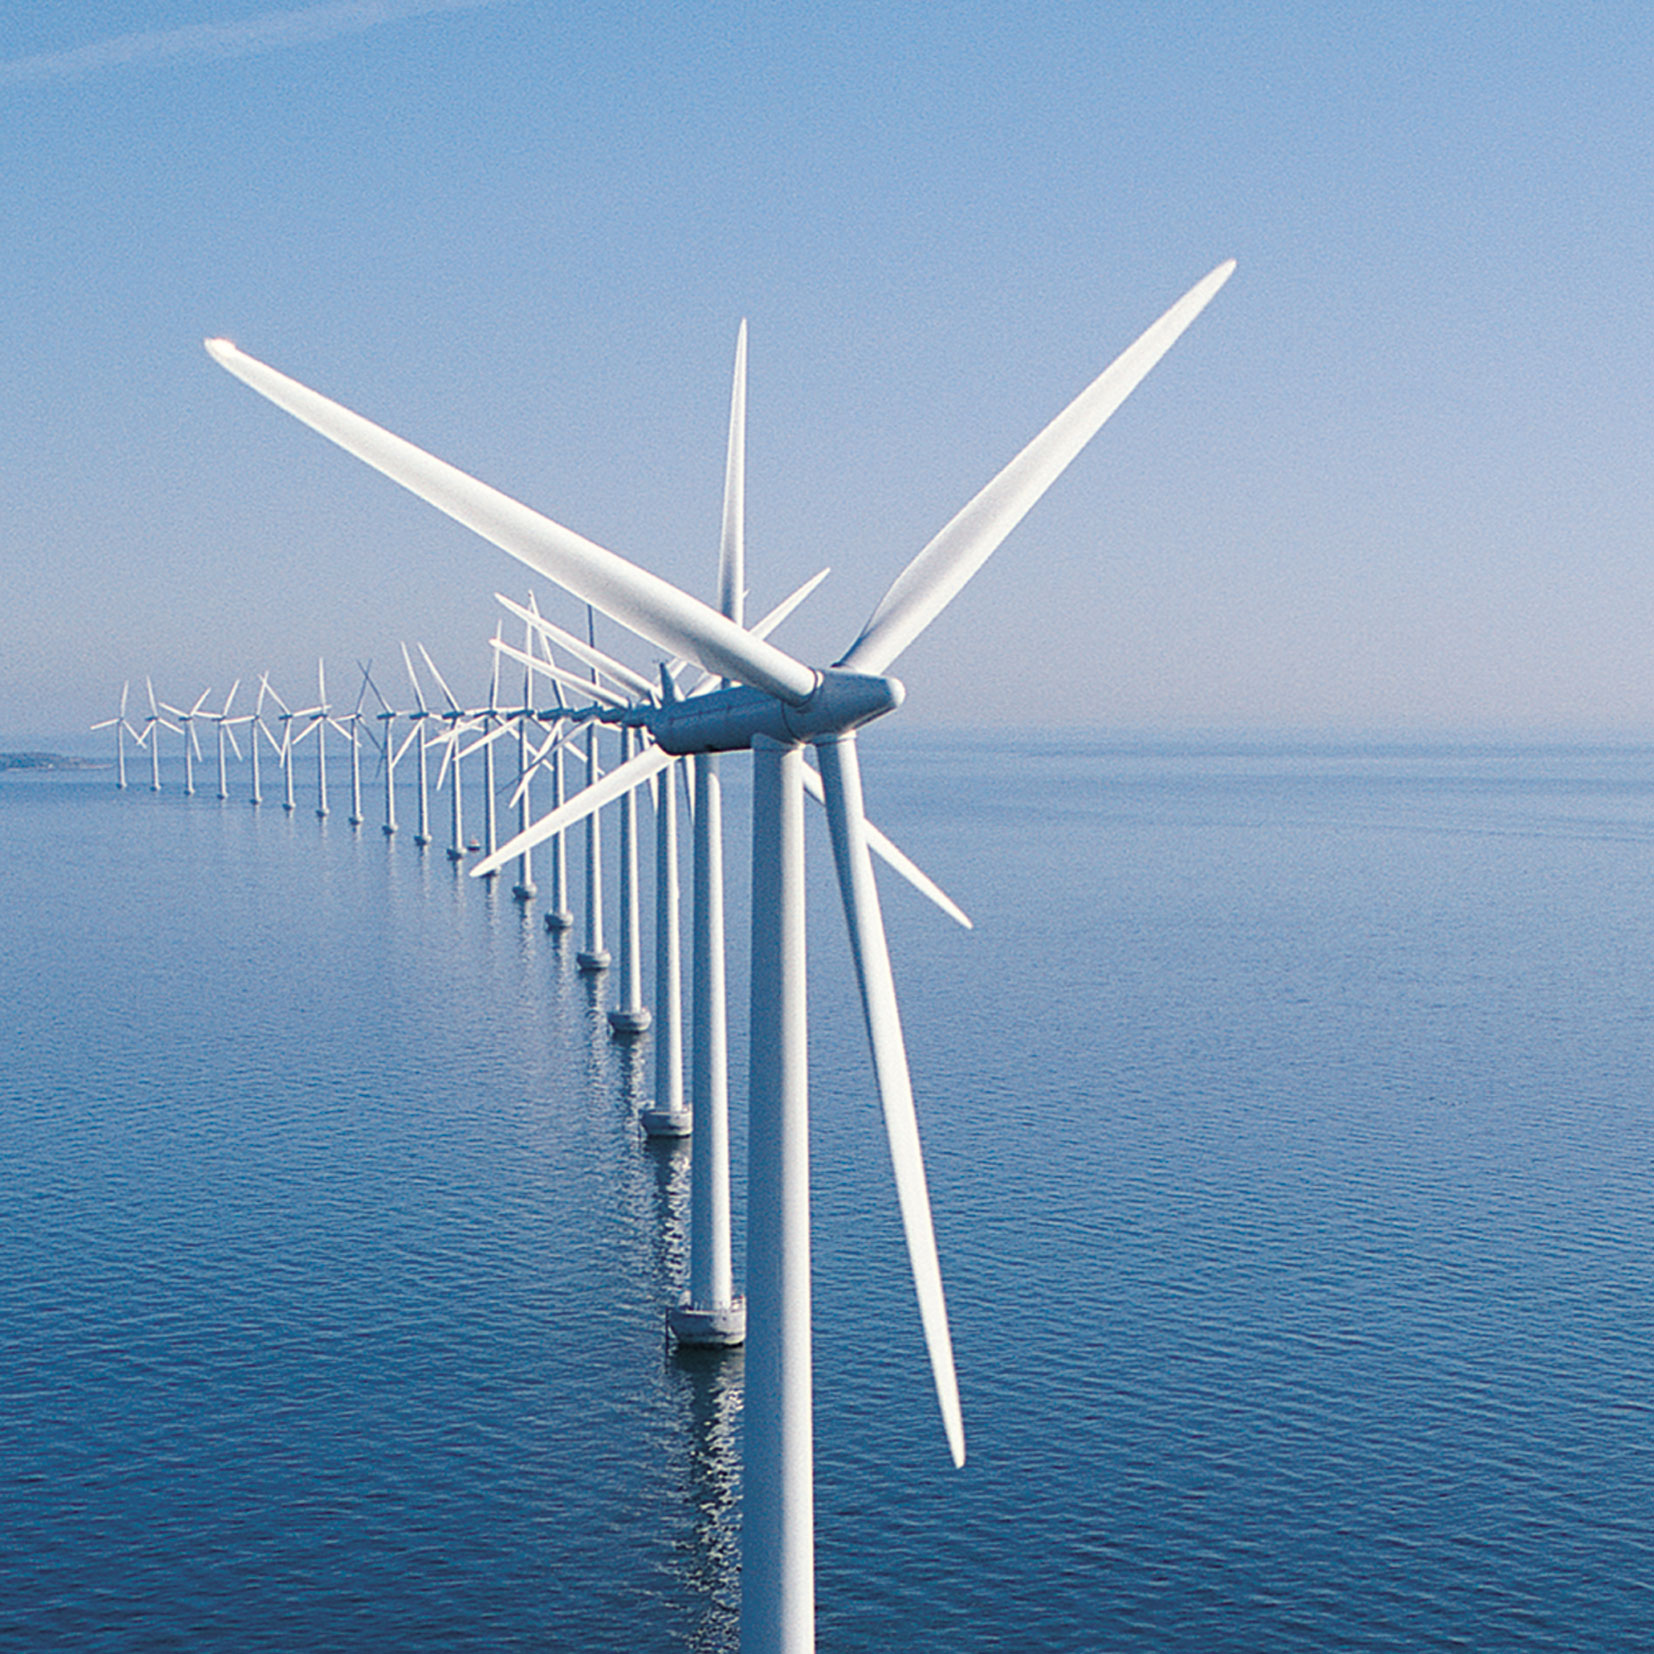 South Korean panies are taking interest in wind turbines